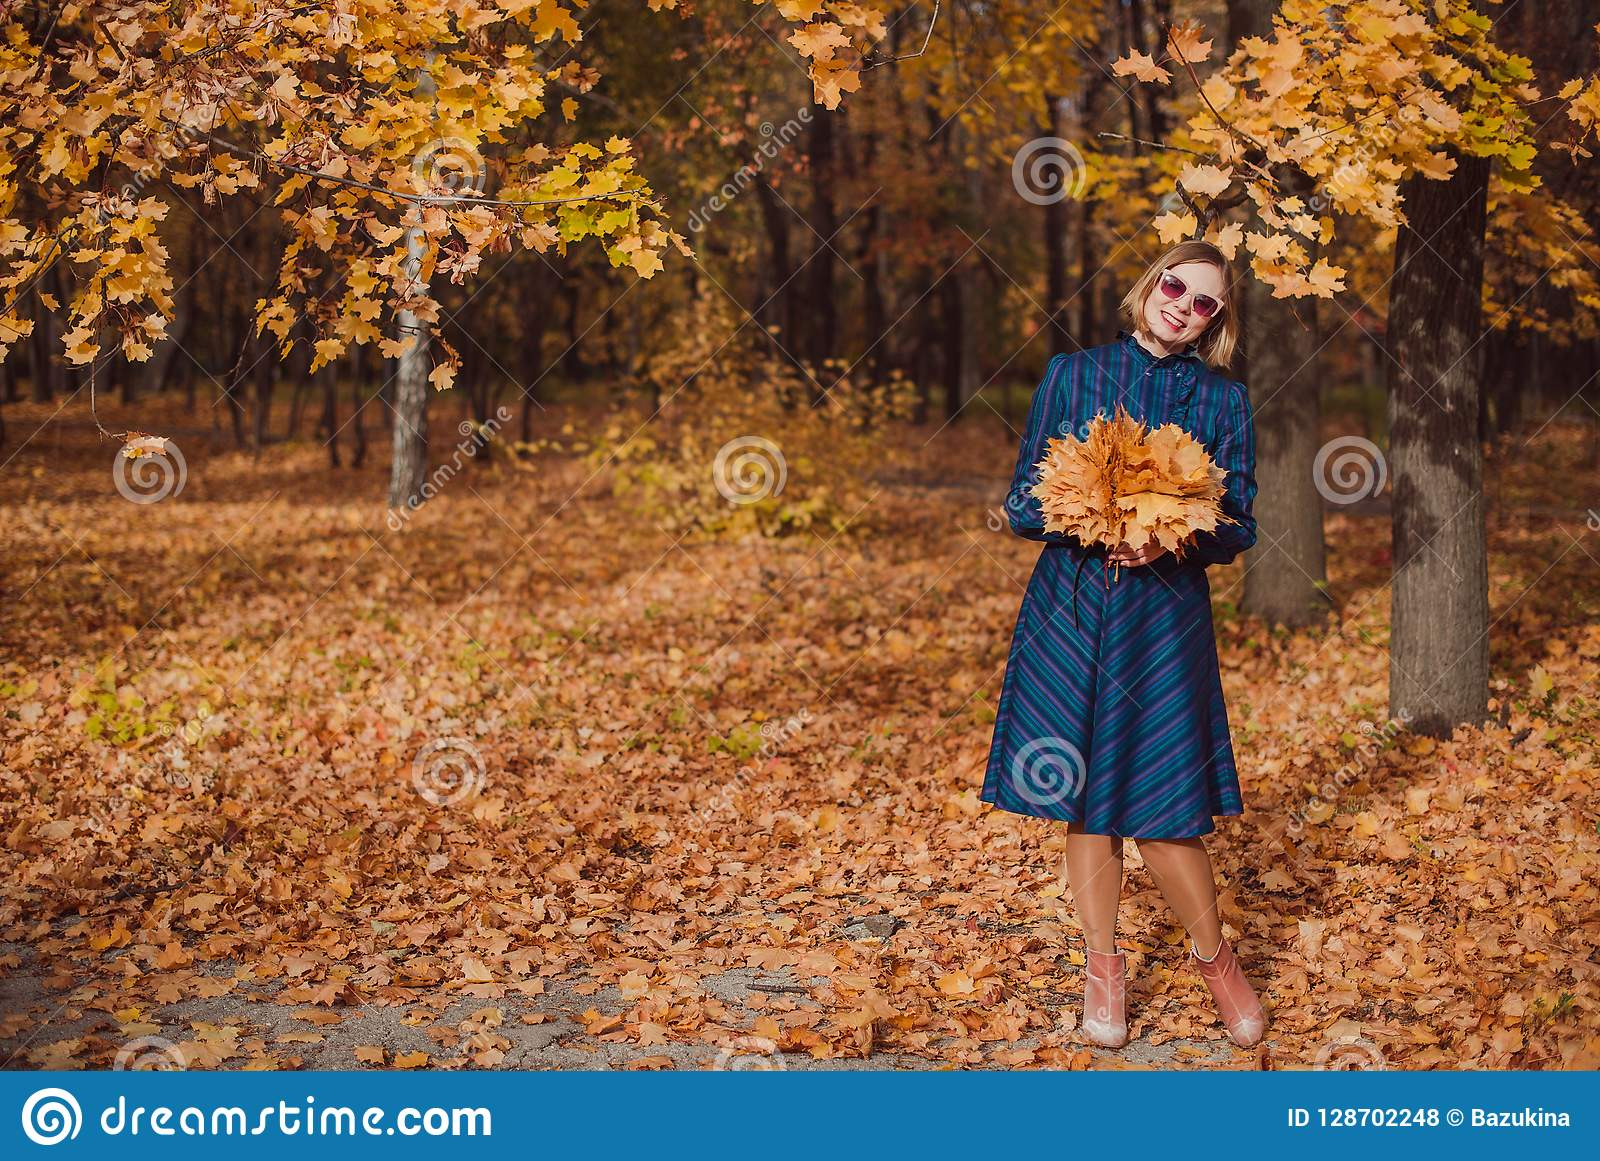 Young woman with blond hair wearing blue dress walking in autumn Park.